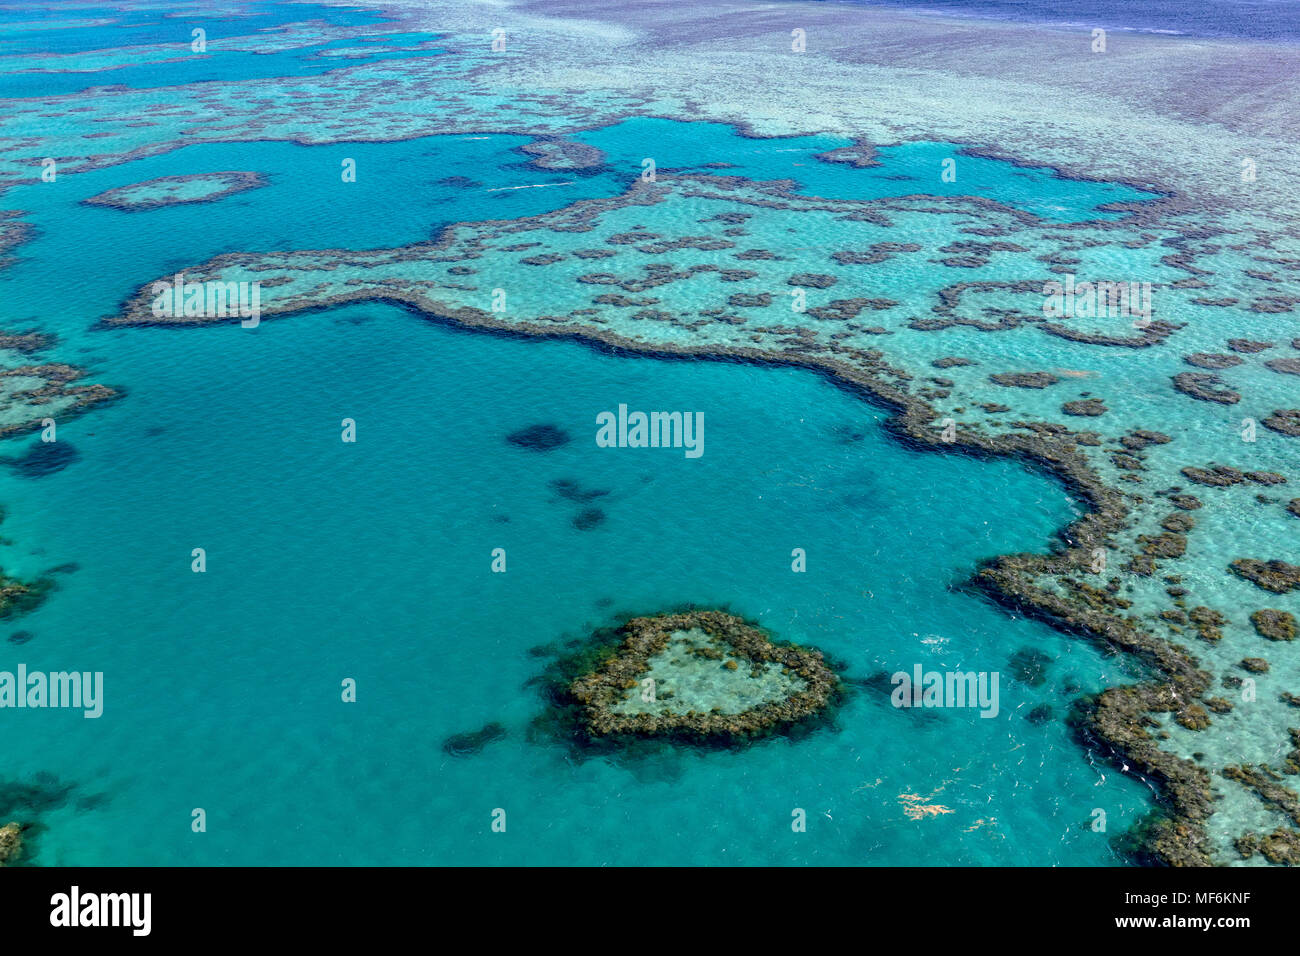 Coral Reef, Heart Reef, part of Hardy Reef, Outer Great Barrier Reef, Queensland, Australia - Stock Image